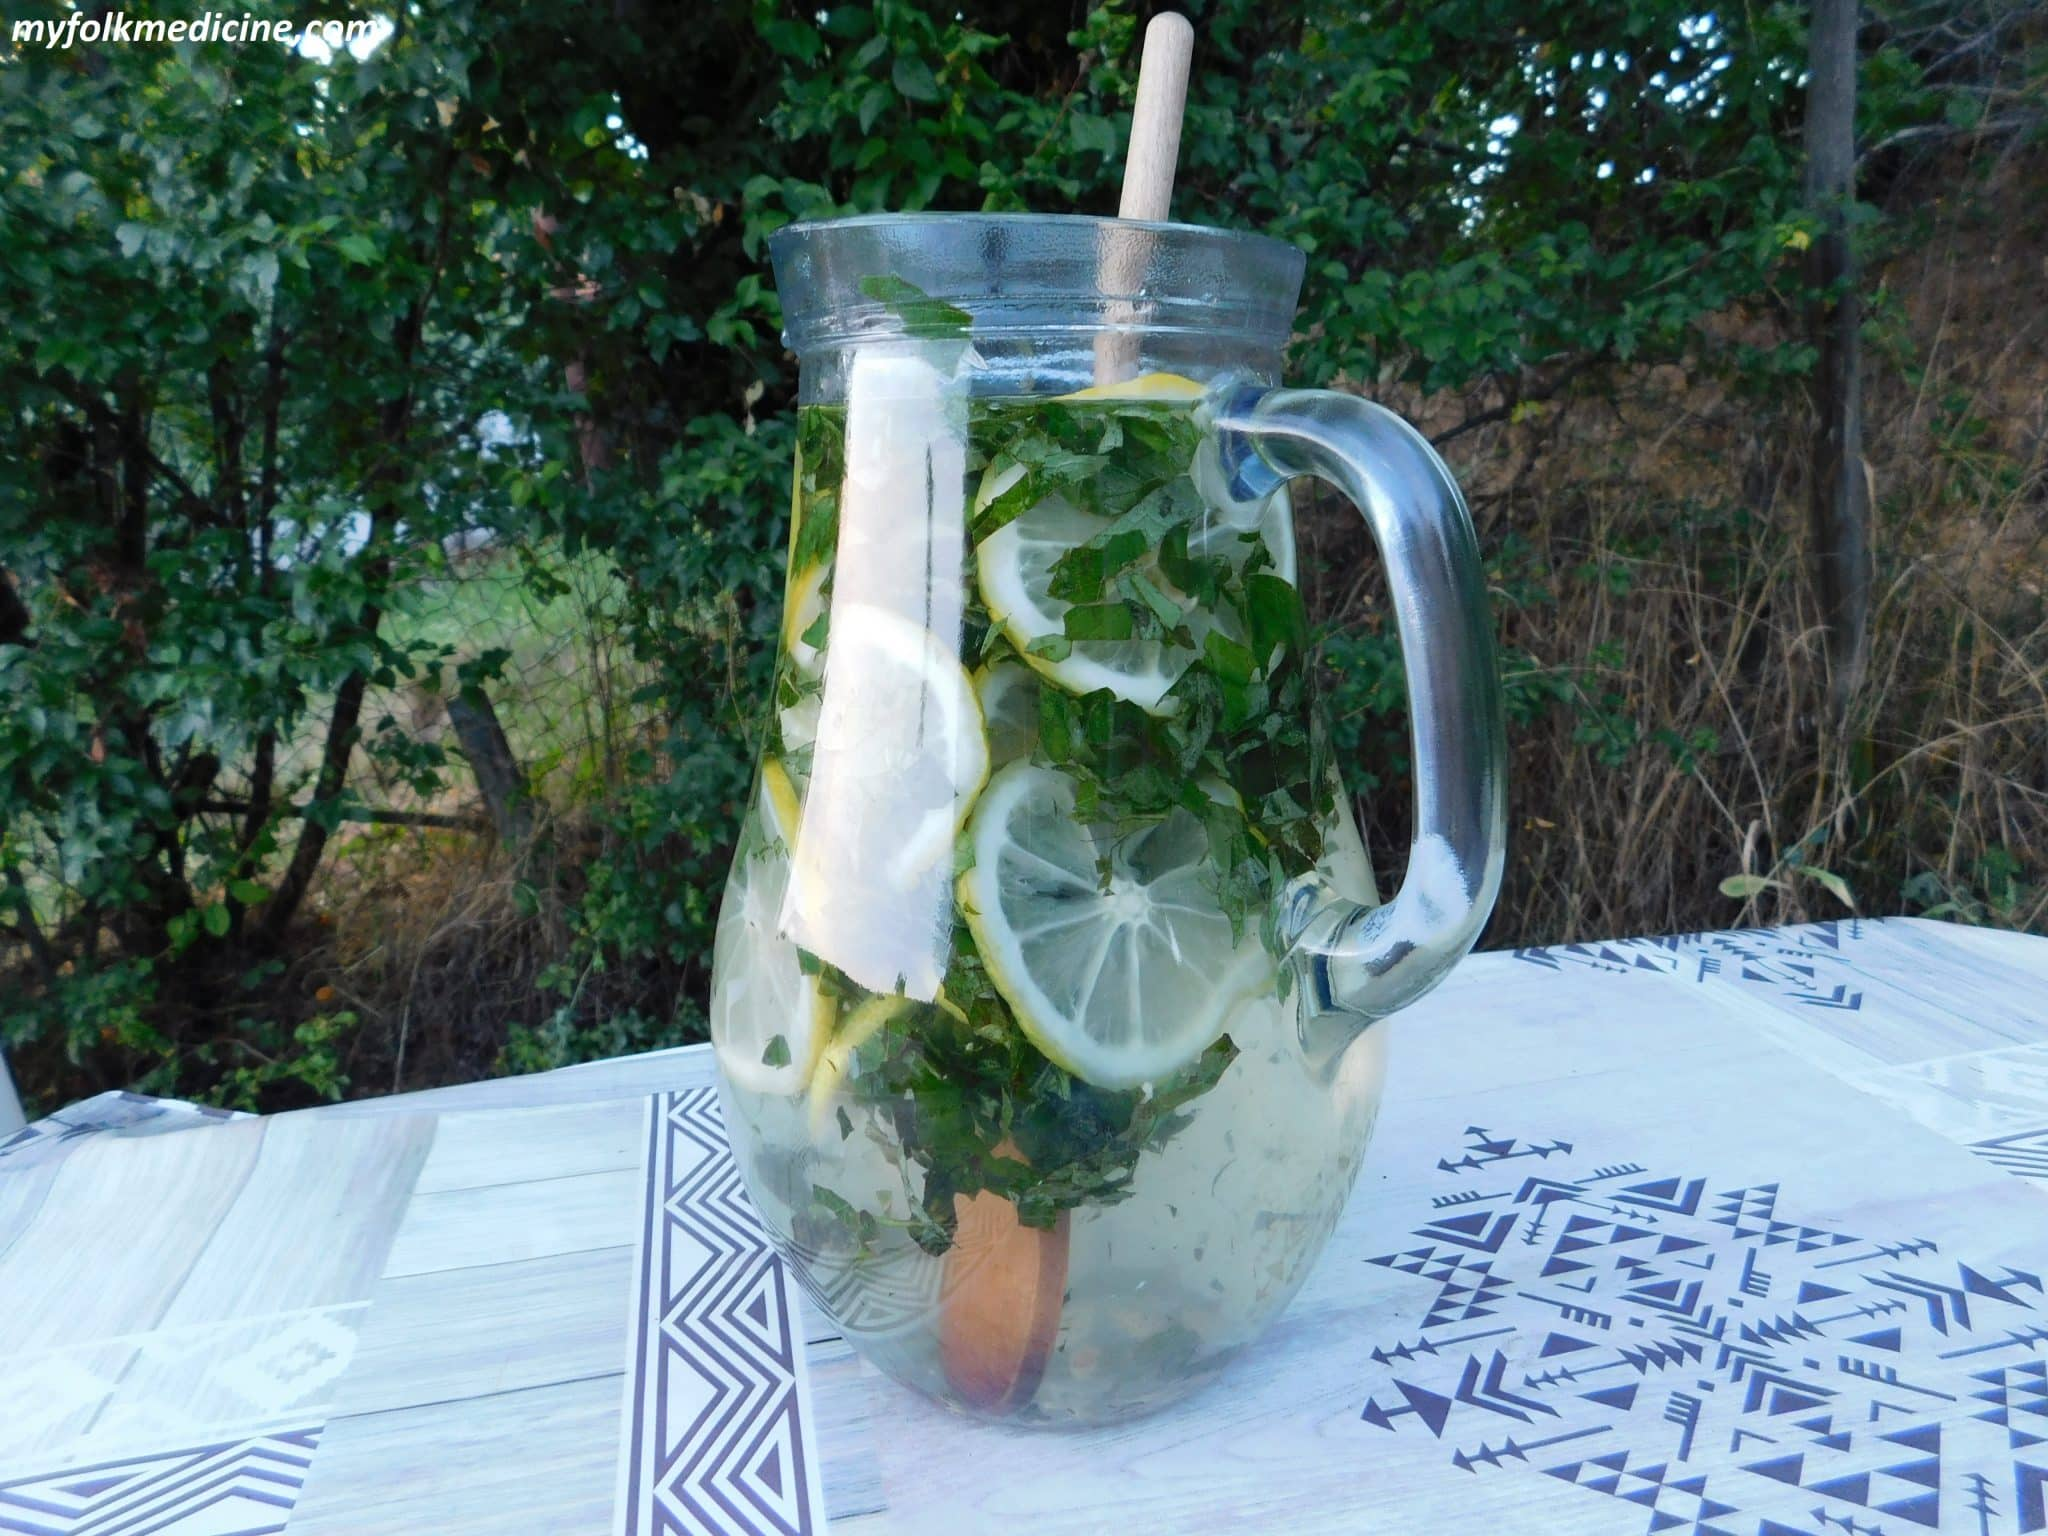 Herbal Infused Water With Mint And Lemon Balm